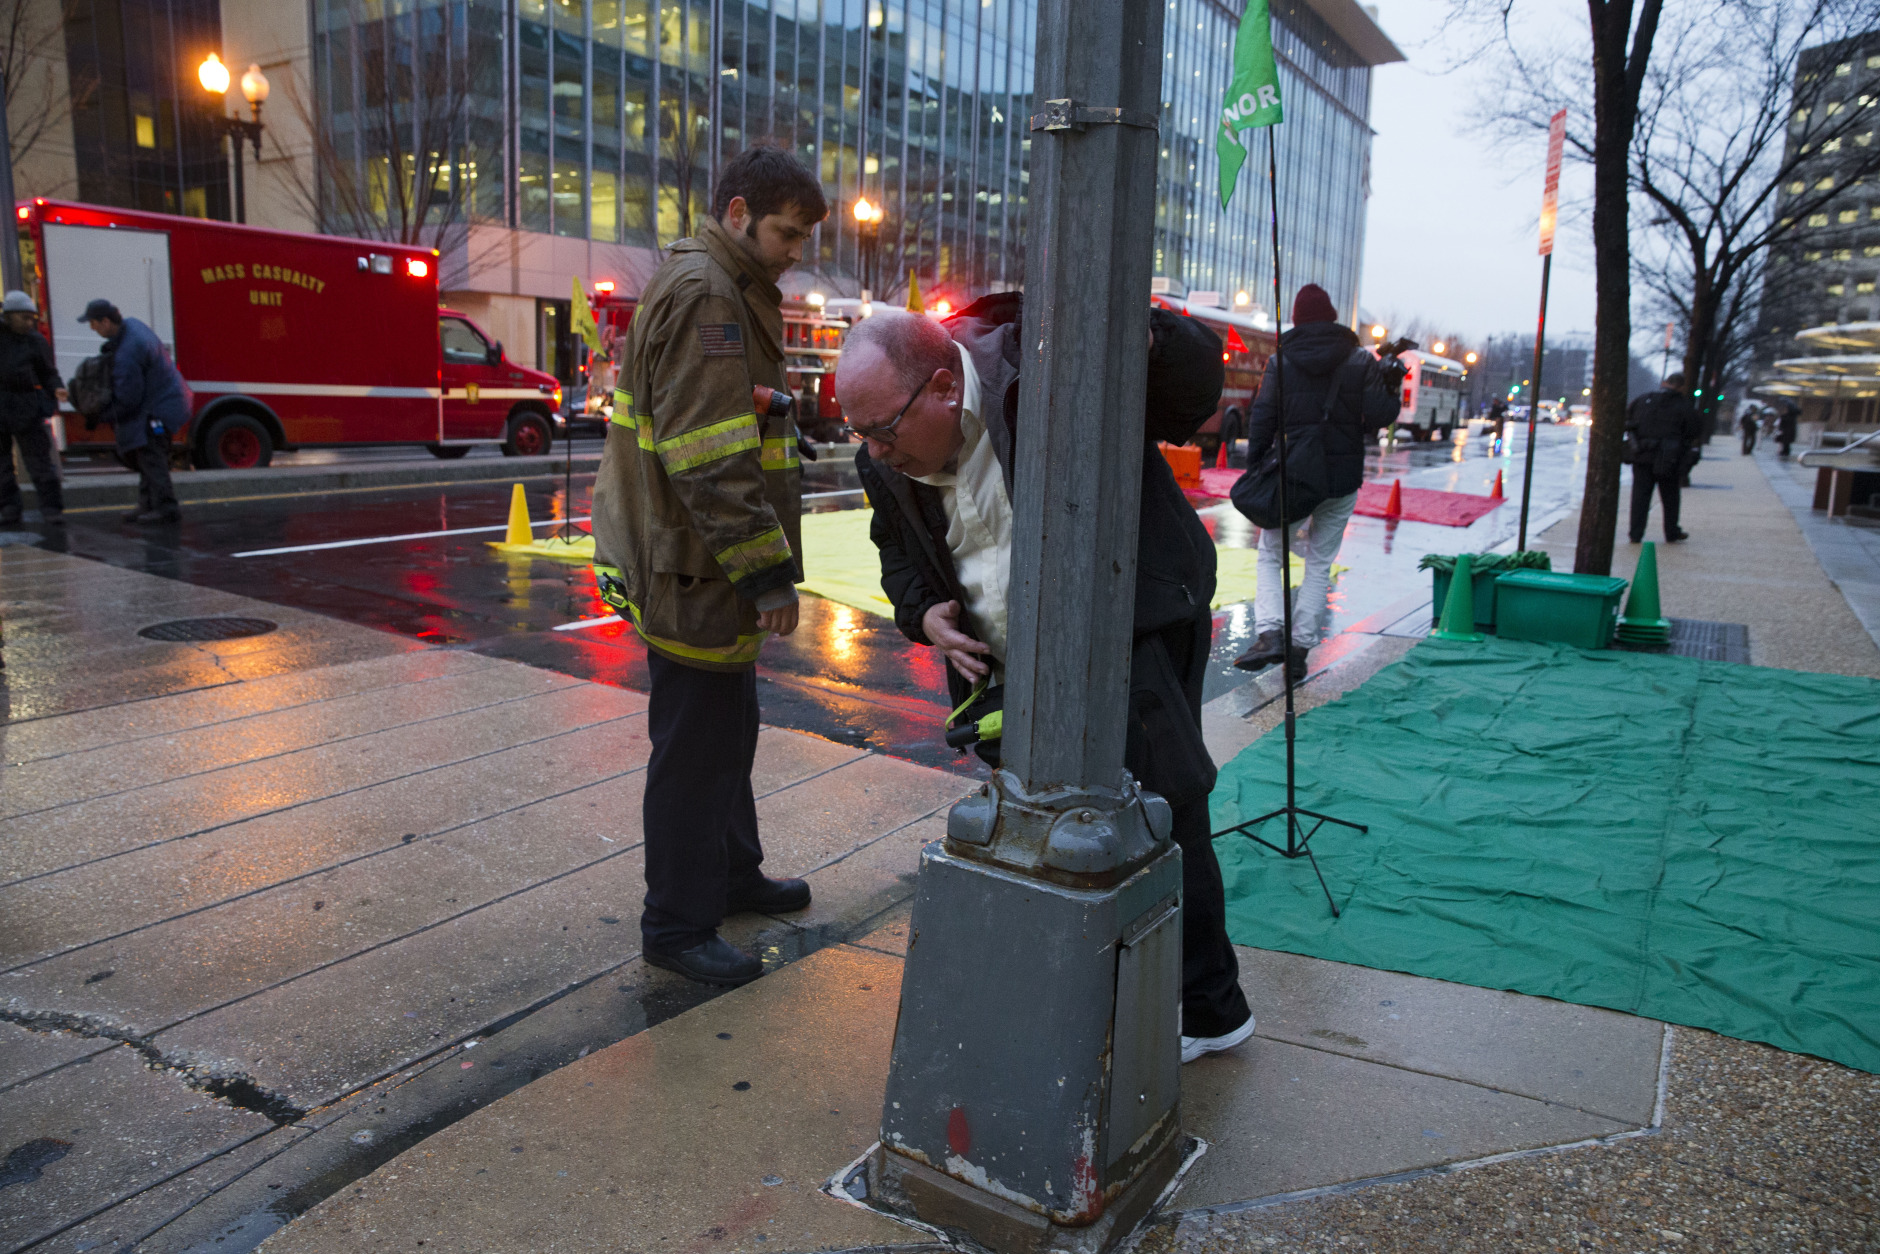 A man coughs and spits as he is evacuated from a smoke filled Metro subway tunnel in Washington, Monday, Jan. 12, 2015. Metro officials say one of the busiest stations in downtown Washington has been evacuated because of smoke.  Authorities say the source of the smoke is unknown.  (AP Photo/Jacquelyn Martin)